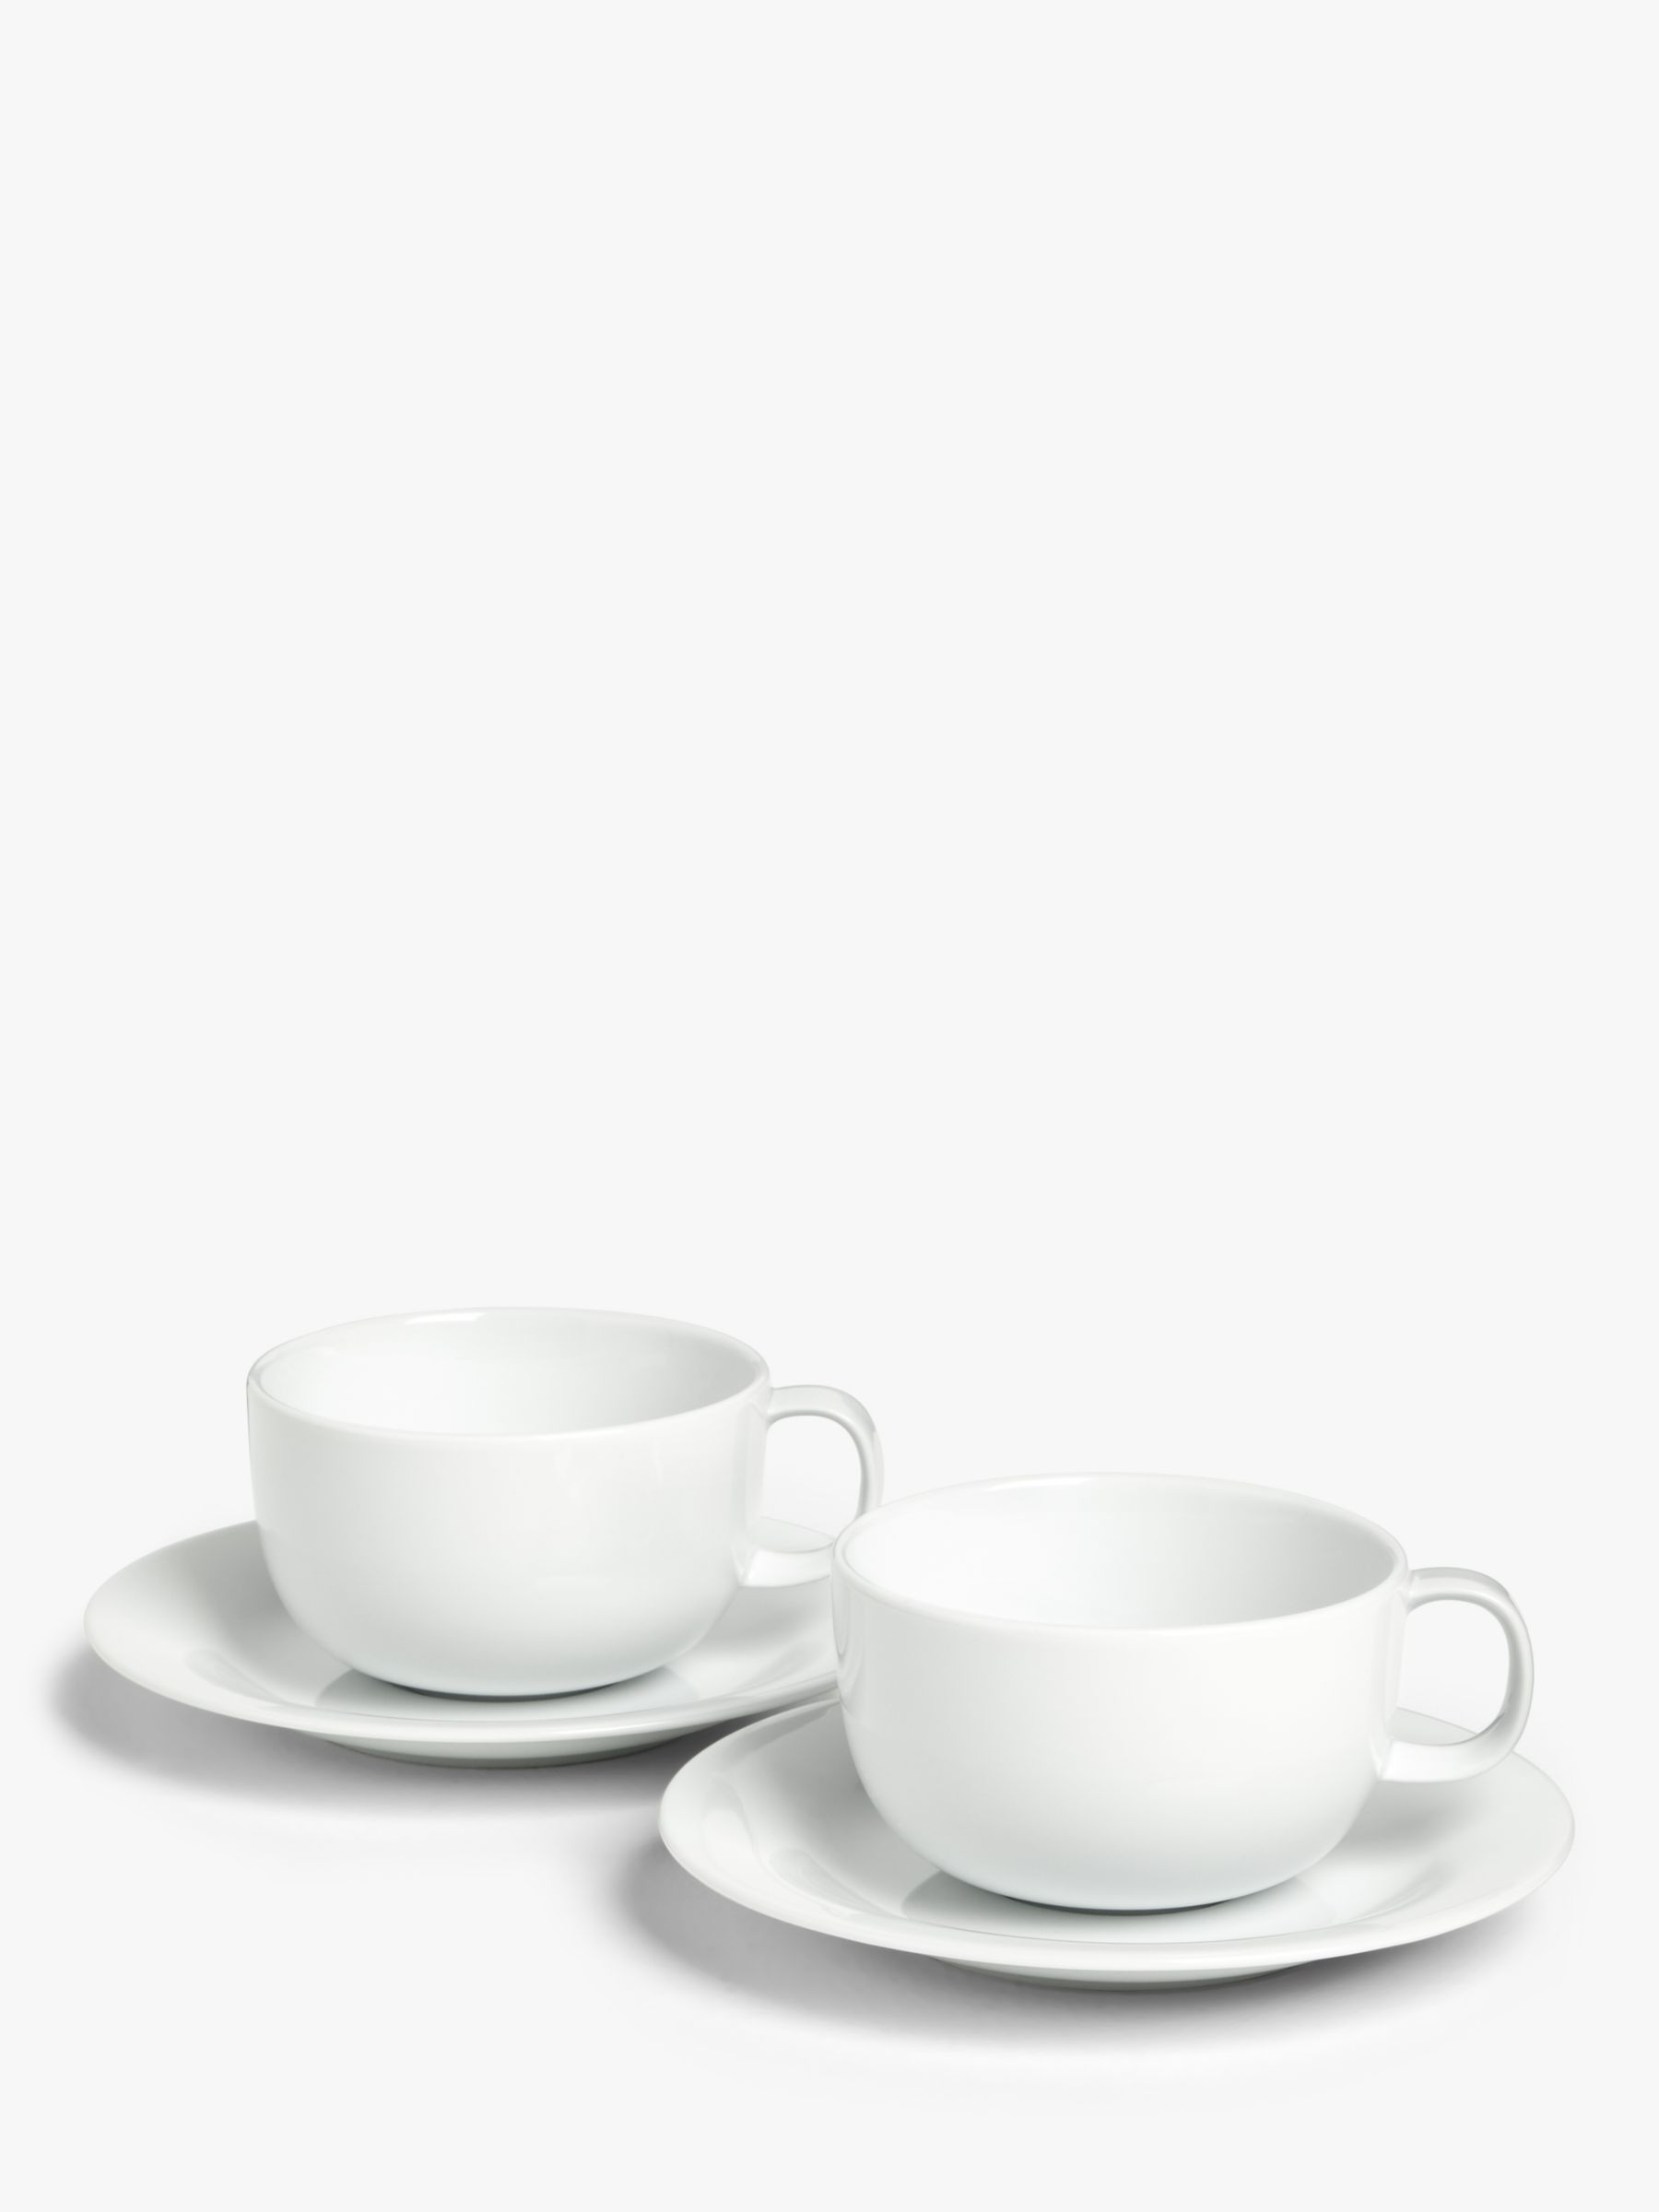 House by John Lewis House by John Lewis Eat Cappuccino Cup & Saucer, Set of 2, White, 370ml